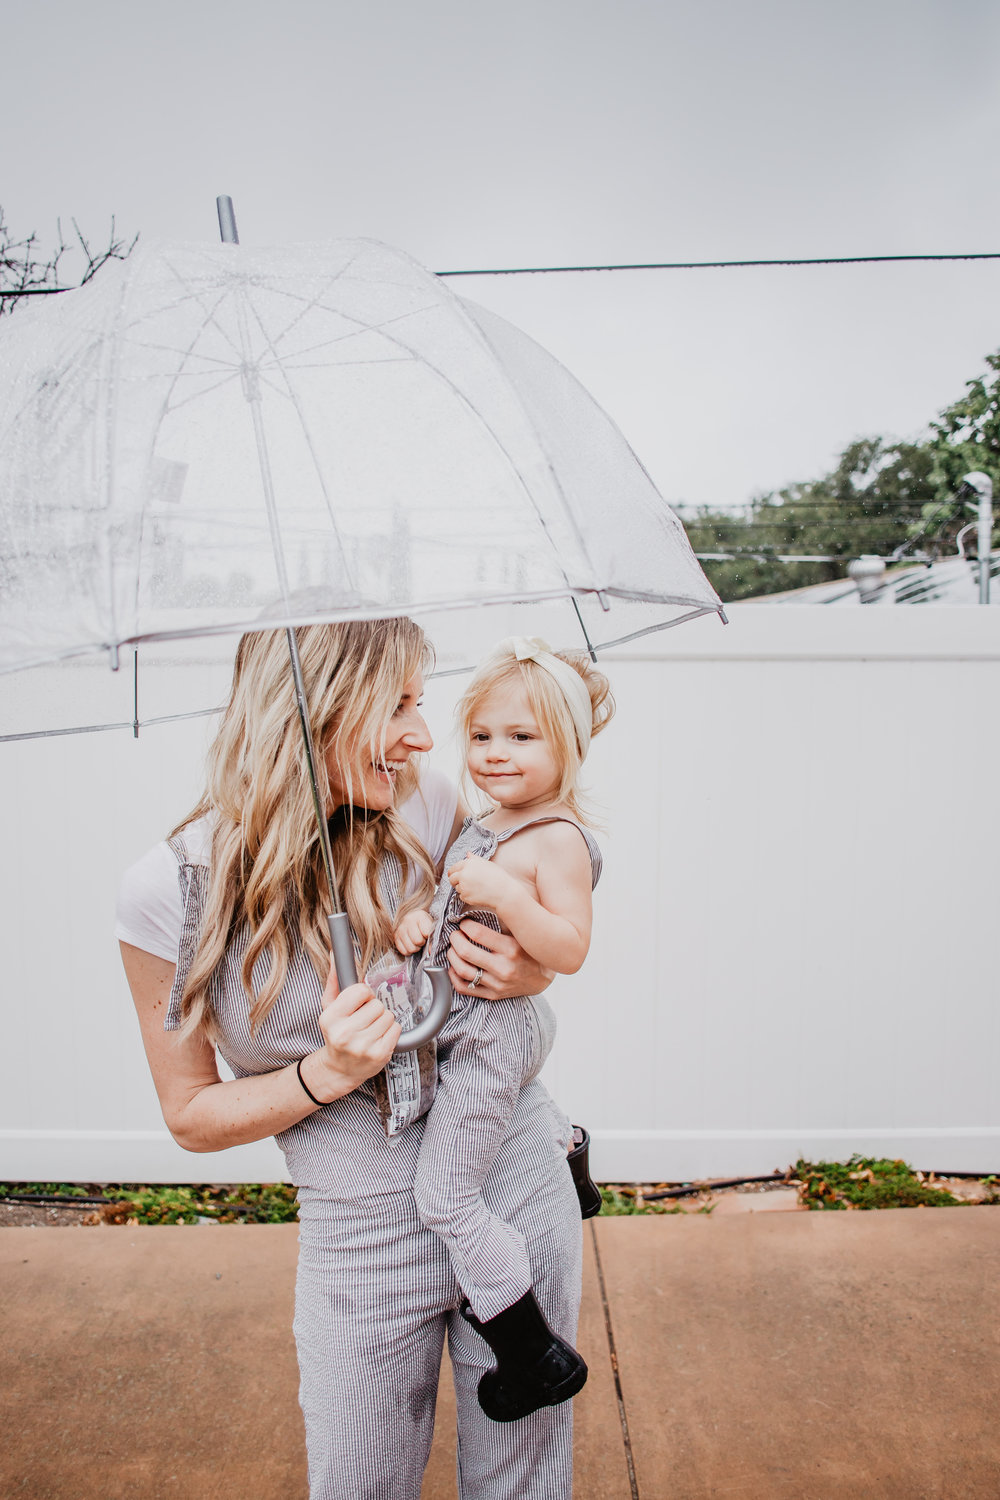 http://theoverwhelmedmommy.com/blog/17-indoor-rainy-day-activities-for-kids-mommy-blogger-vlogger-the-overwhelmed-mommy